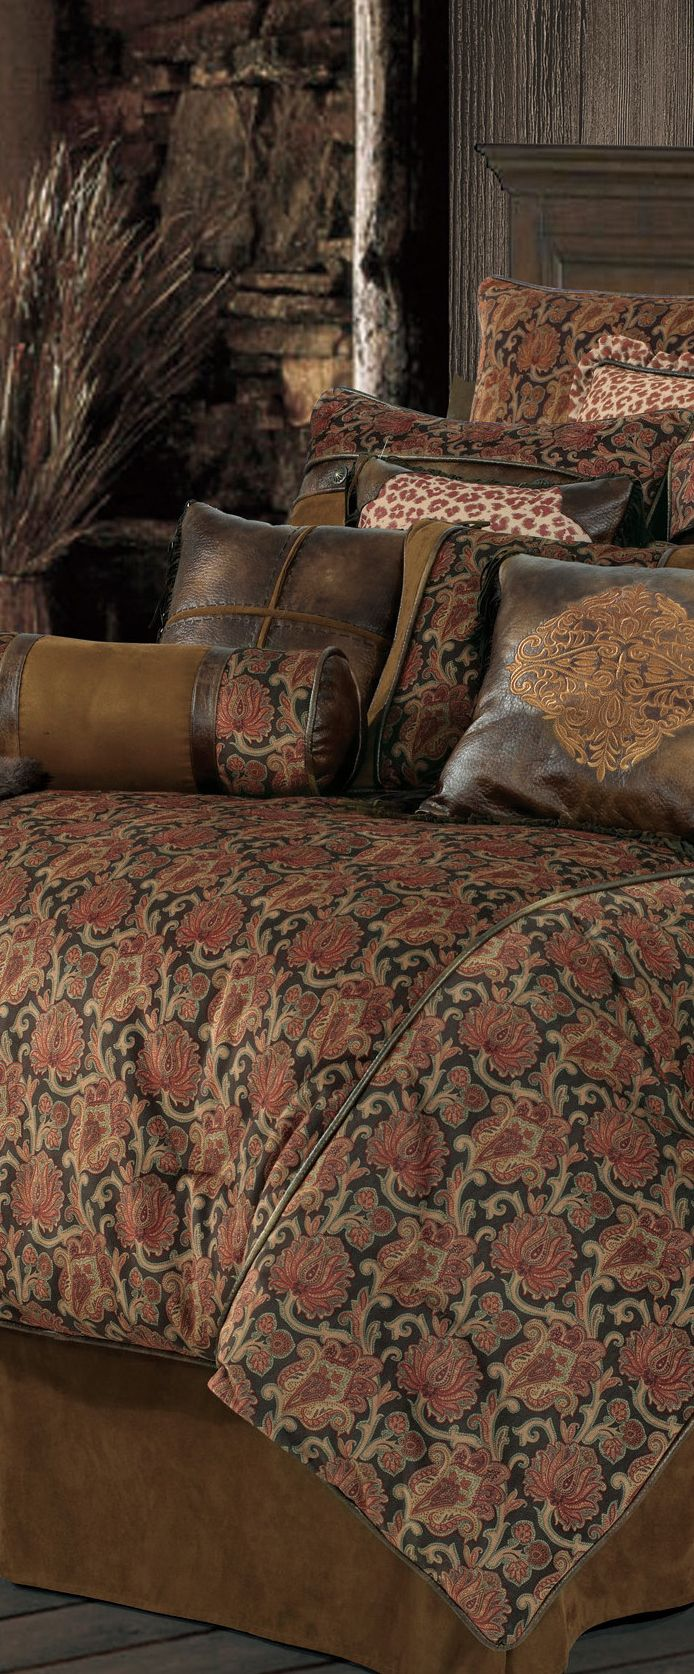 Best Rustic Bedding Sets For 2020 Rustic Bedding Sets Rustic 400 x 300